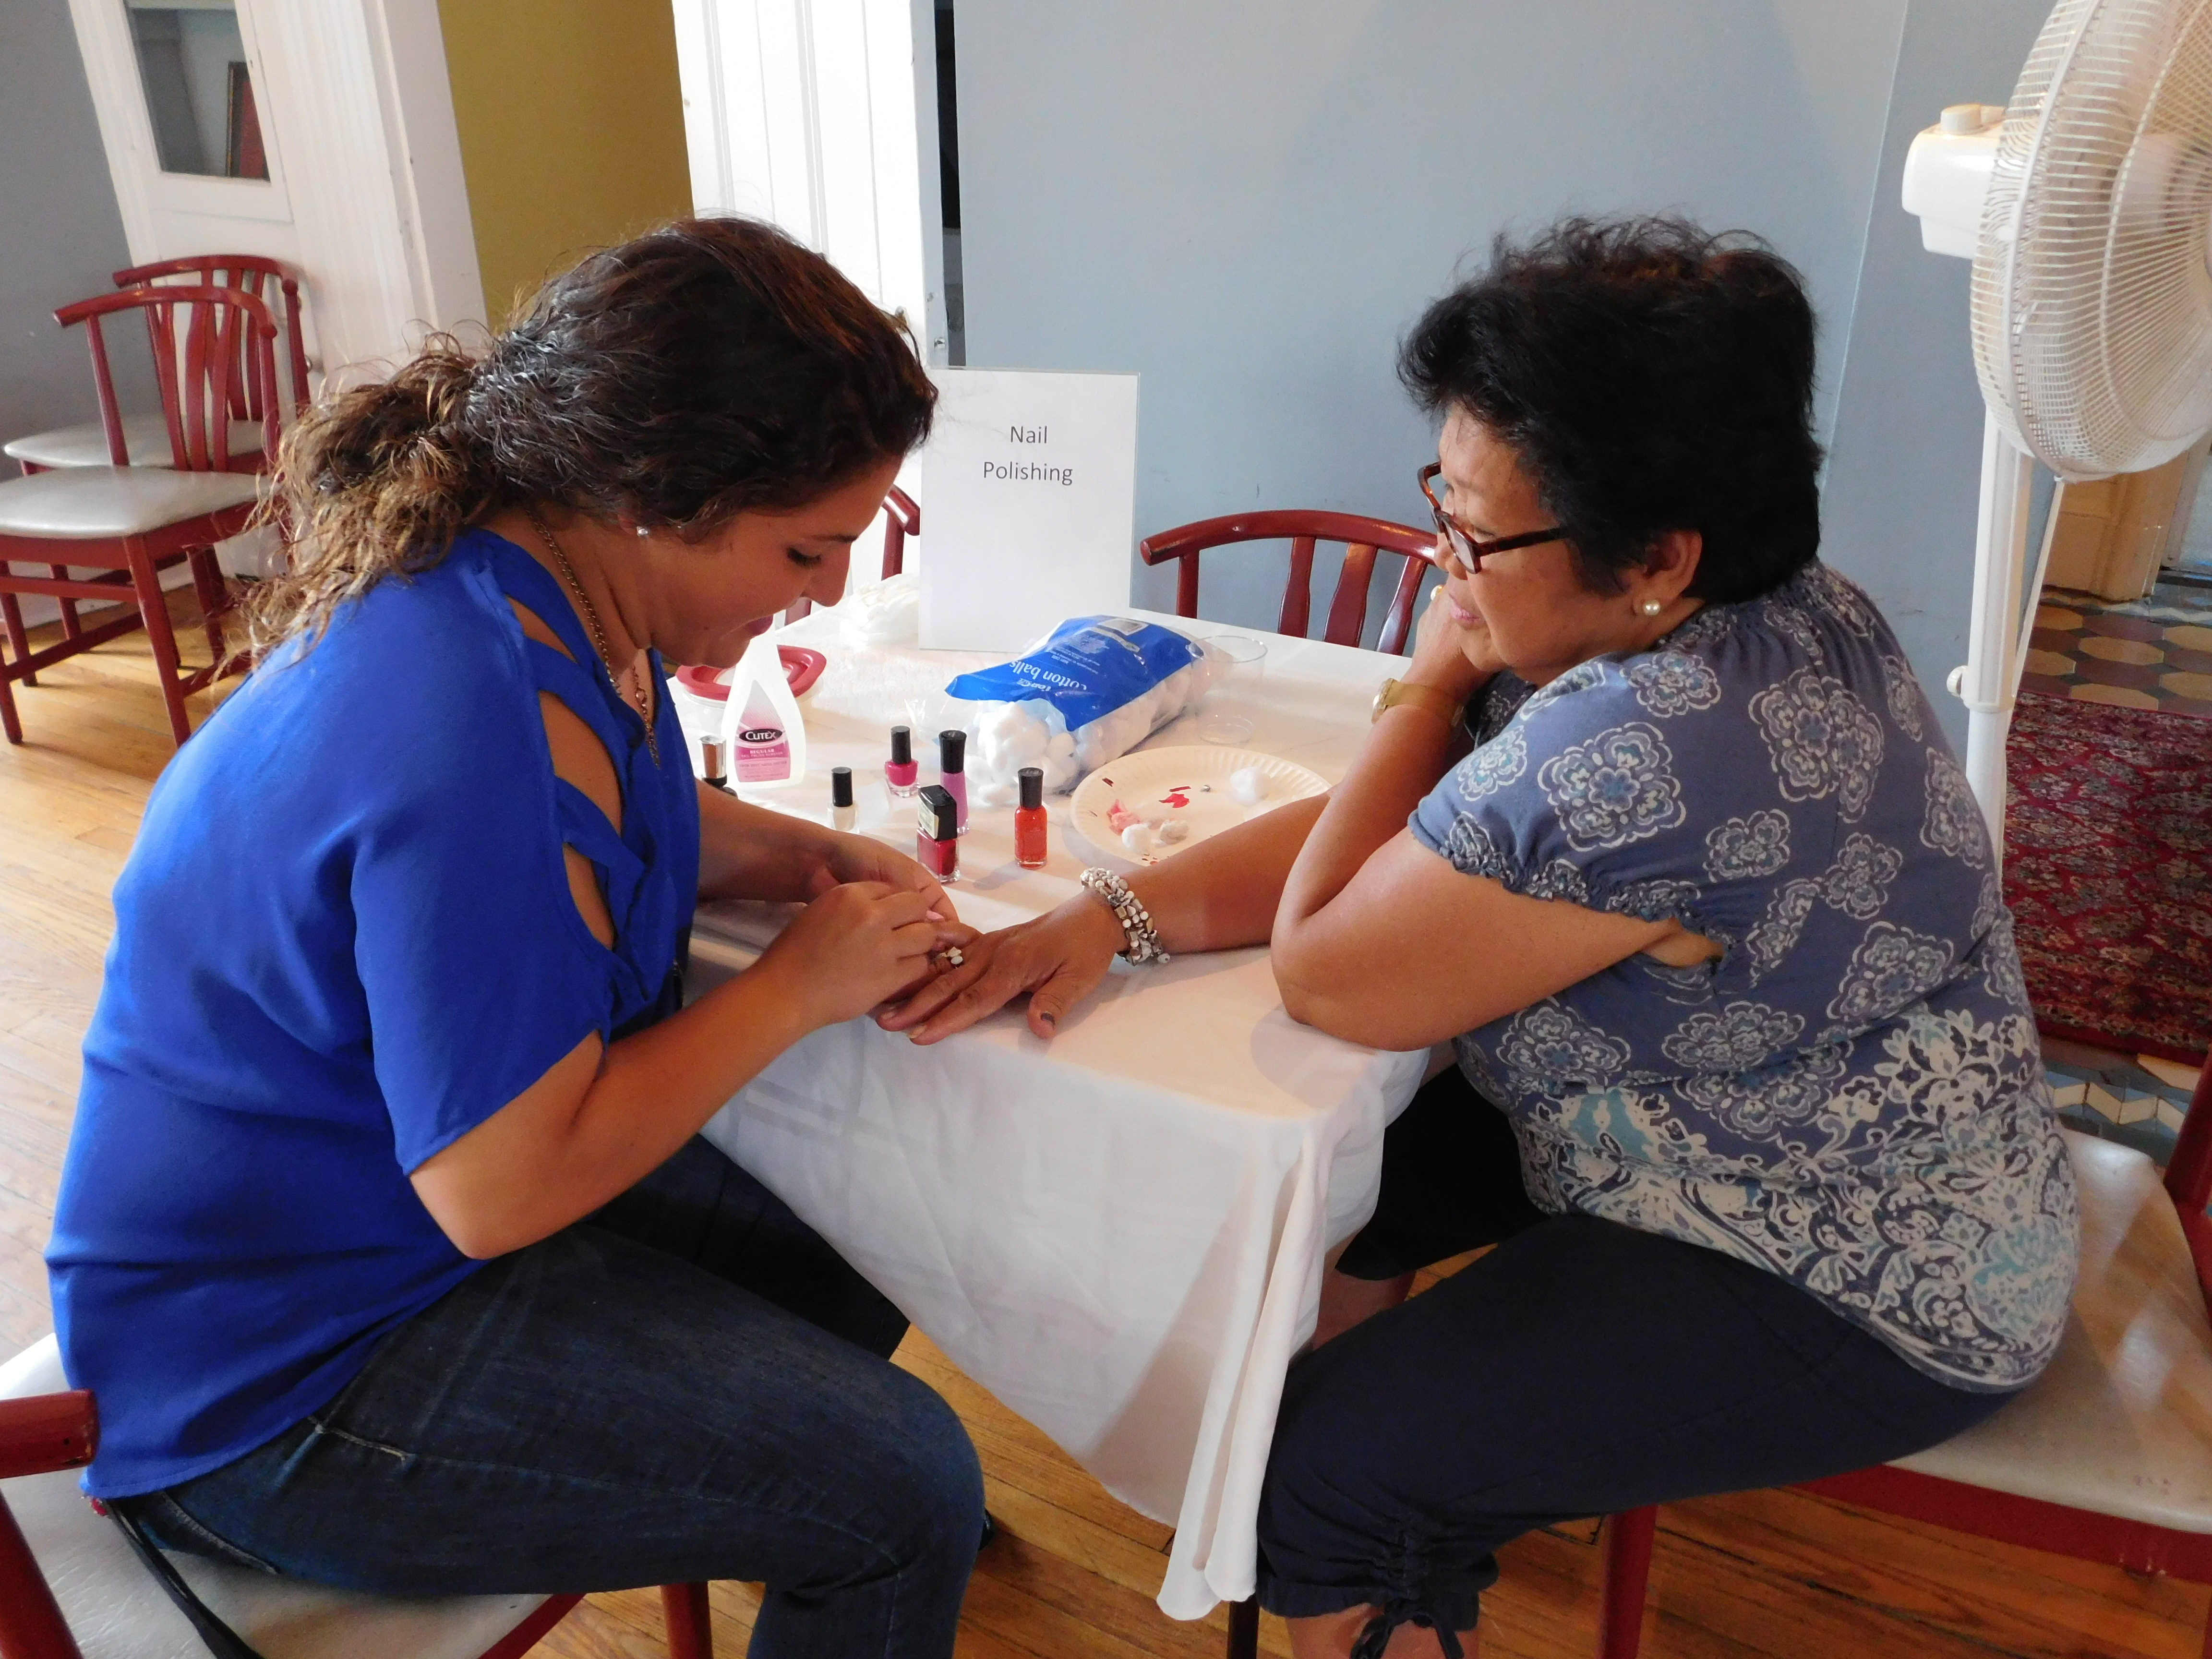 A gentle human touch during a manicure soothes hands and spirit.